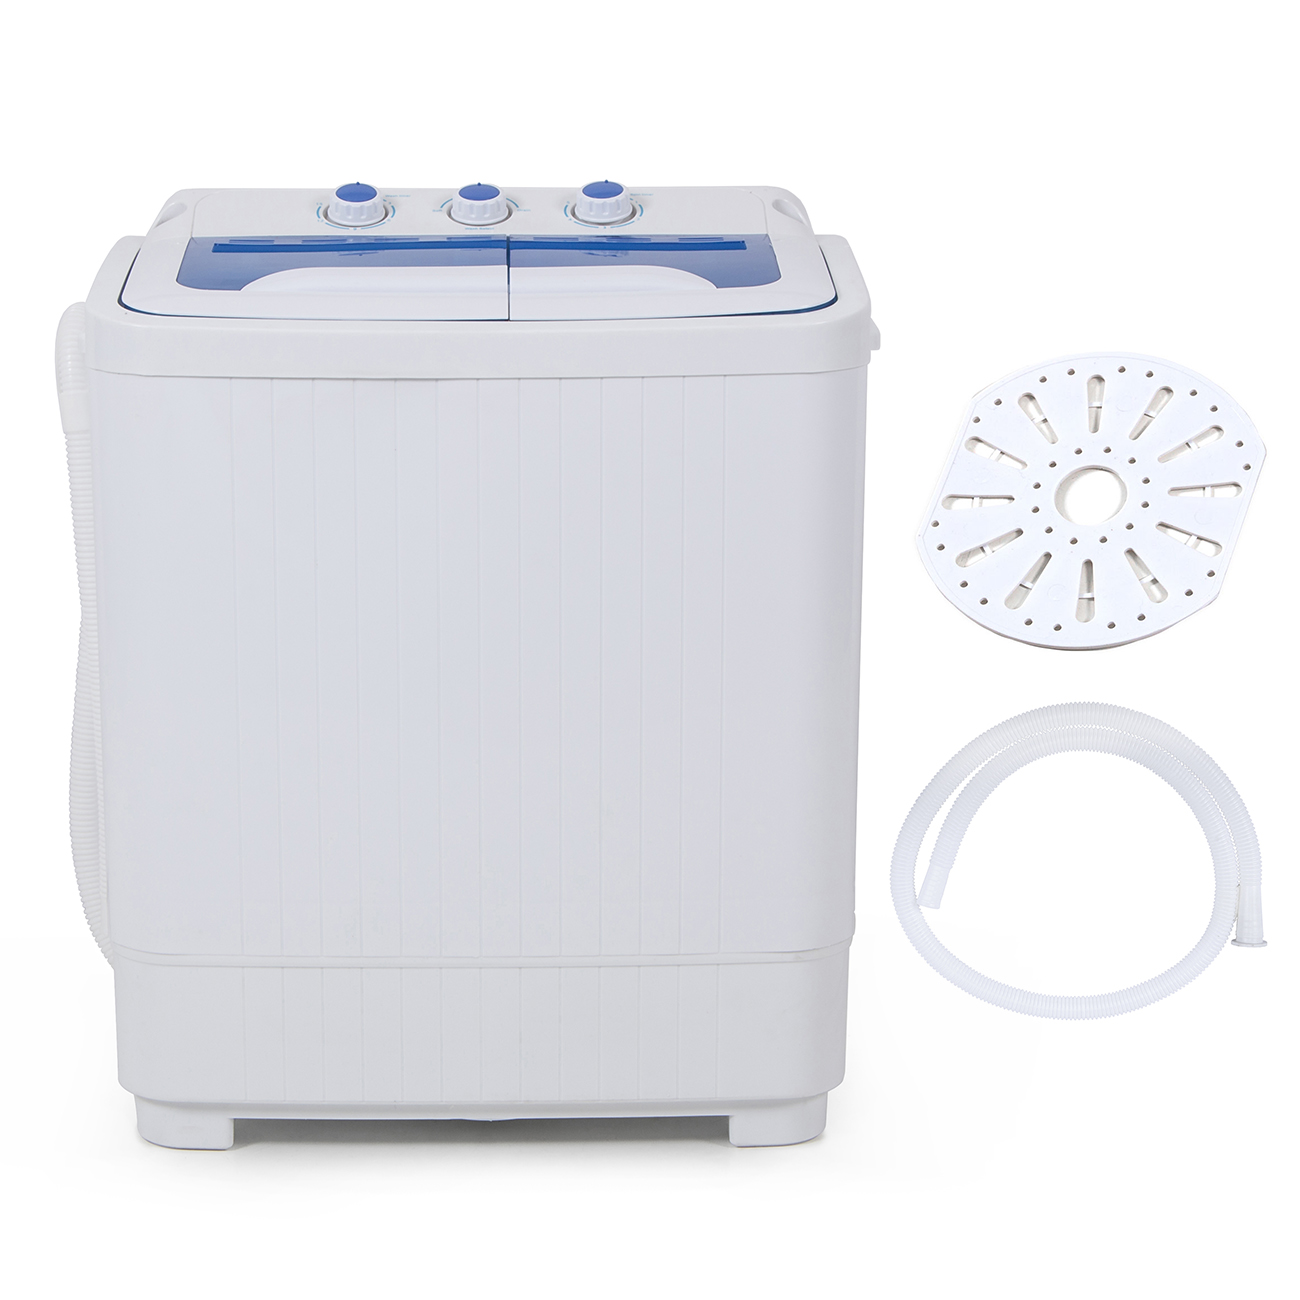 Portable MINI RV Dorms Compact Dual Timer Washing Machines Spin and Dryer White  eBay